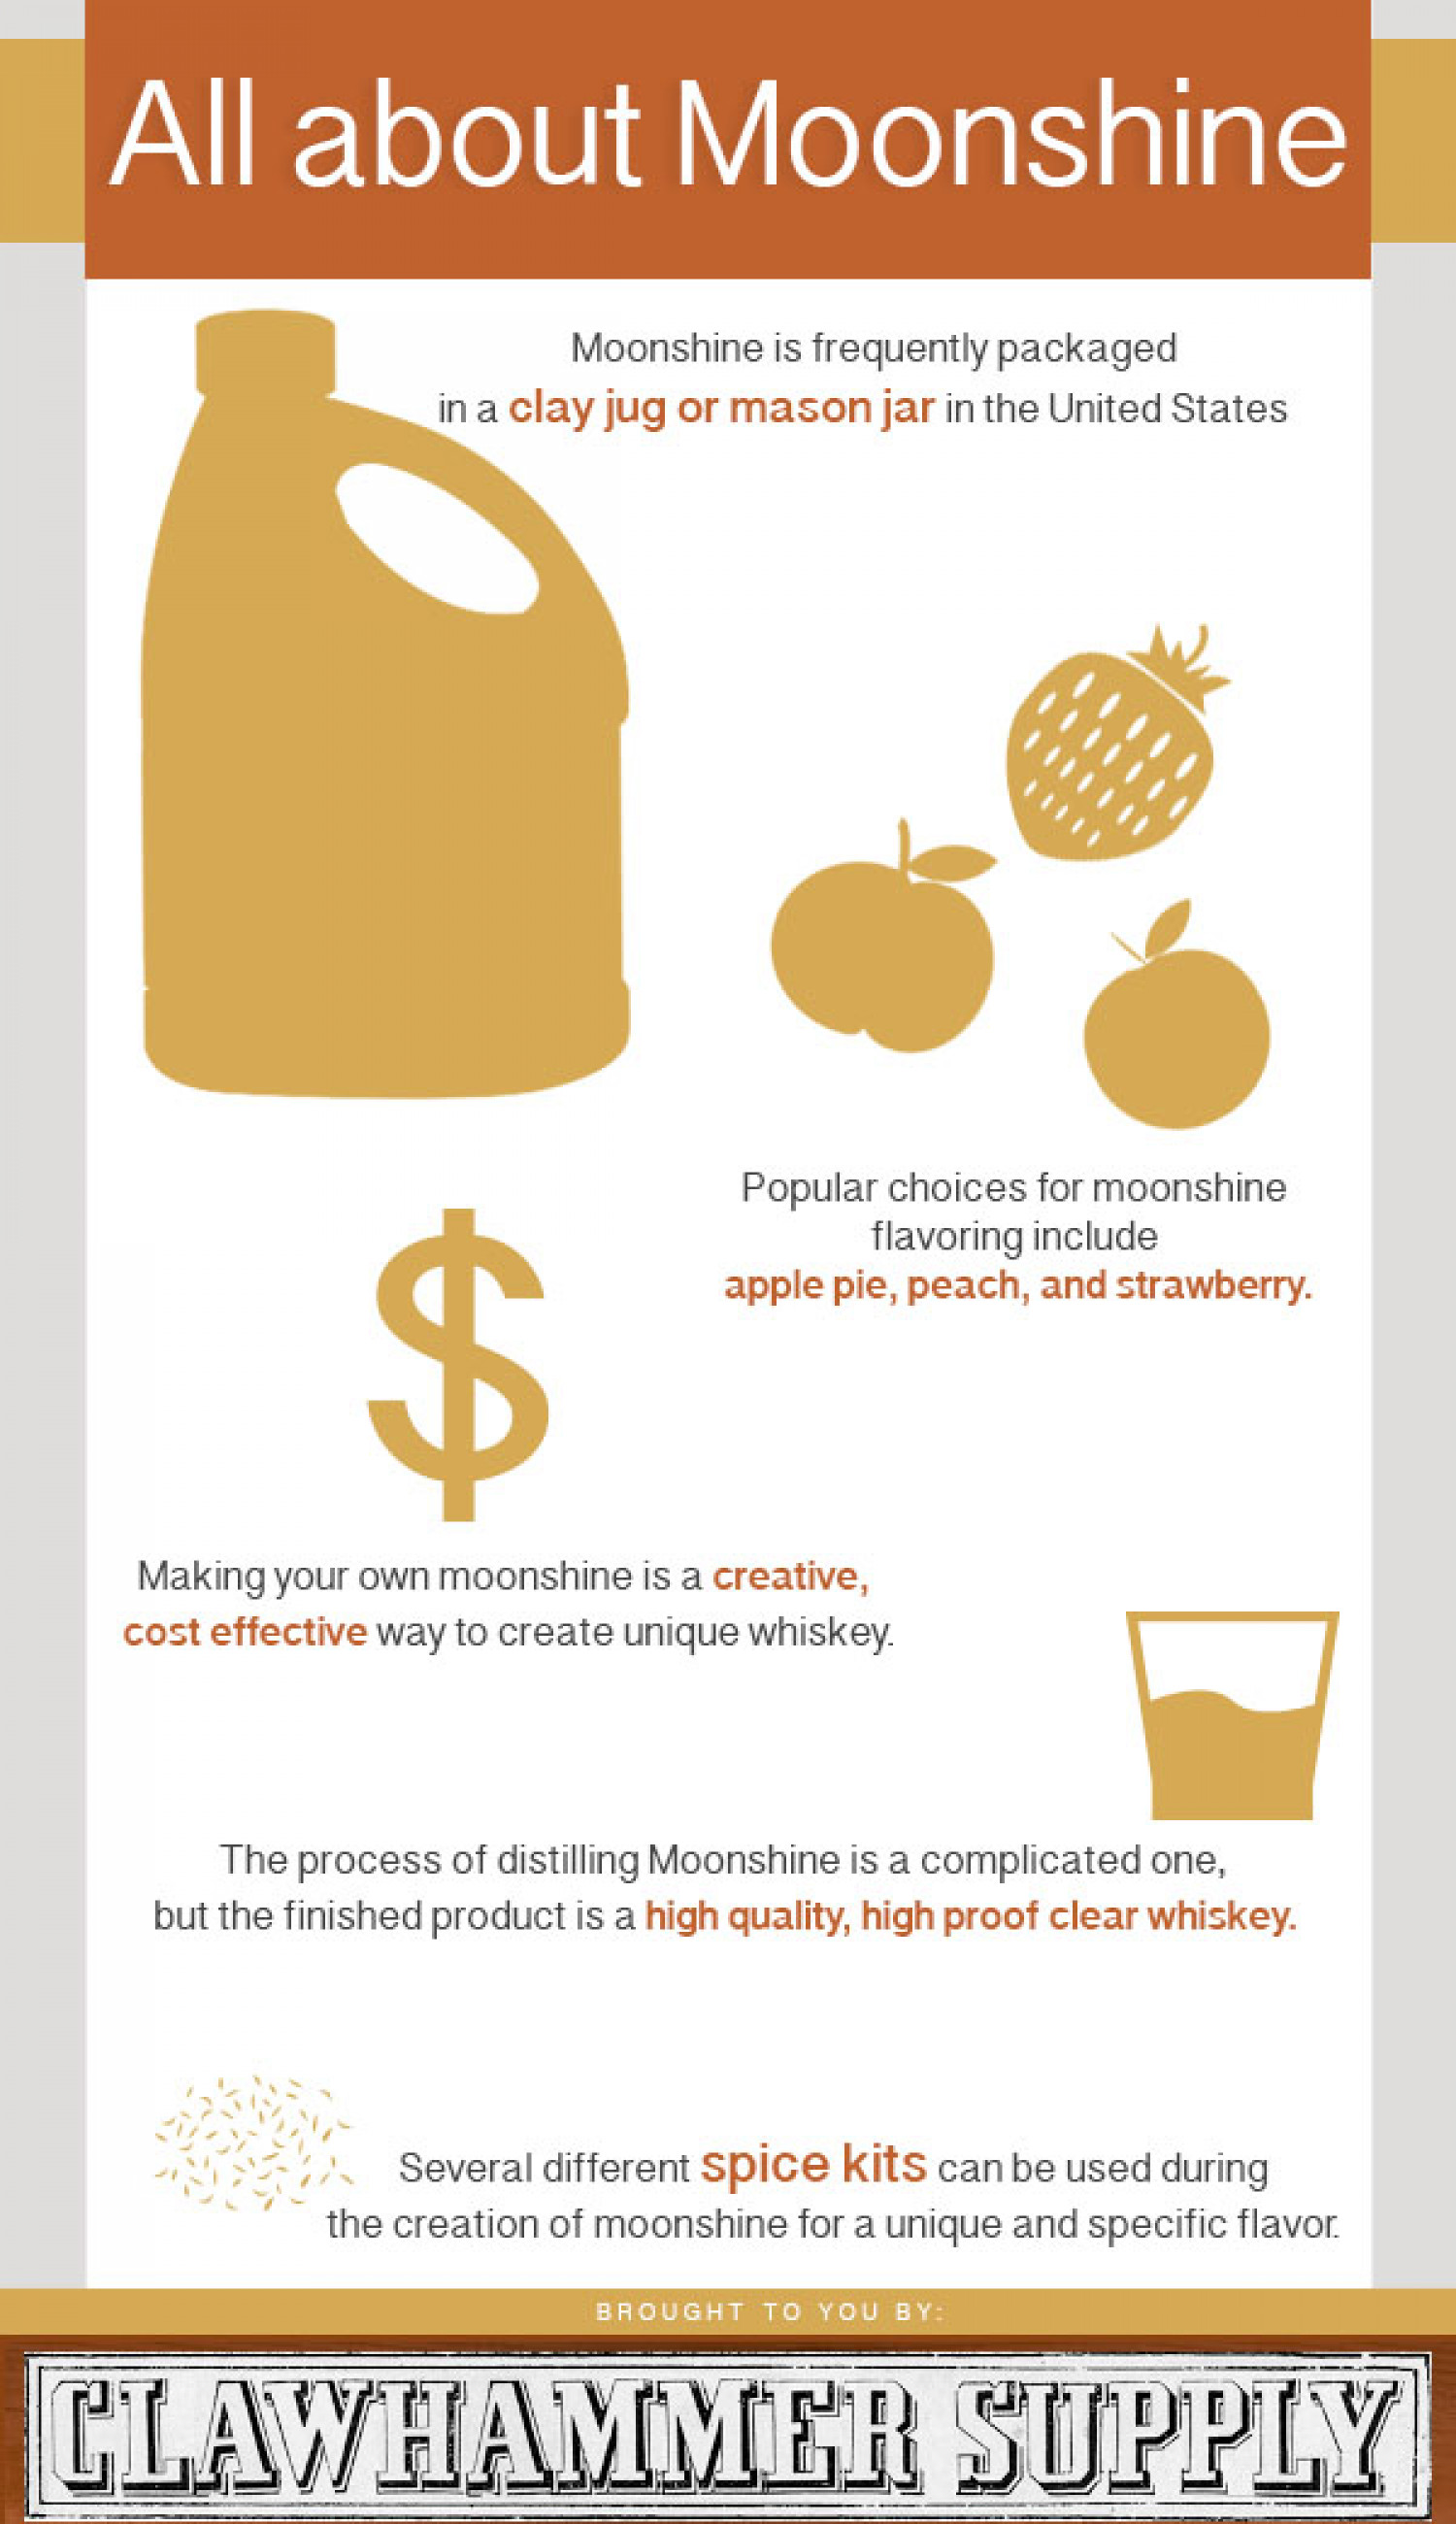 All About Moonshine Infographic